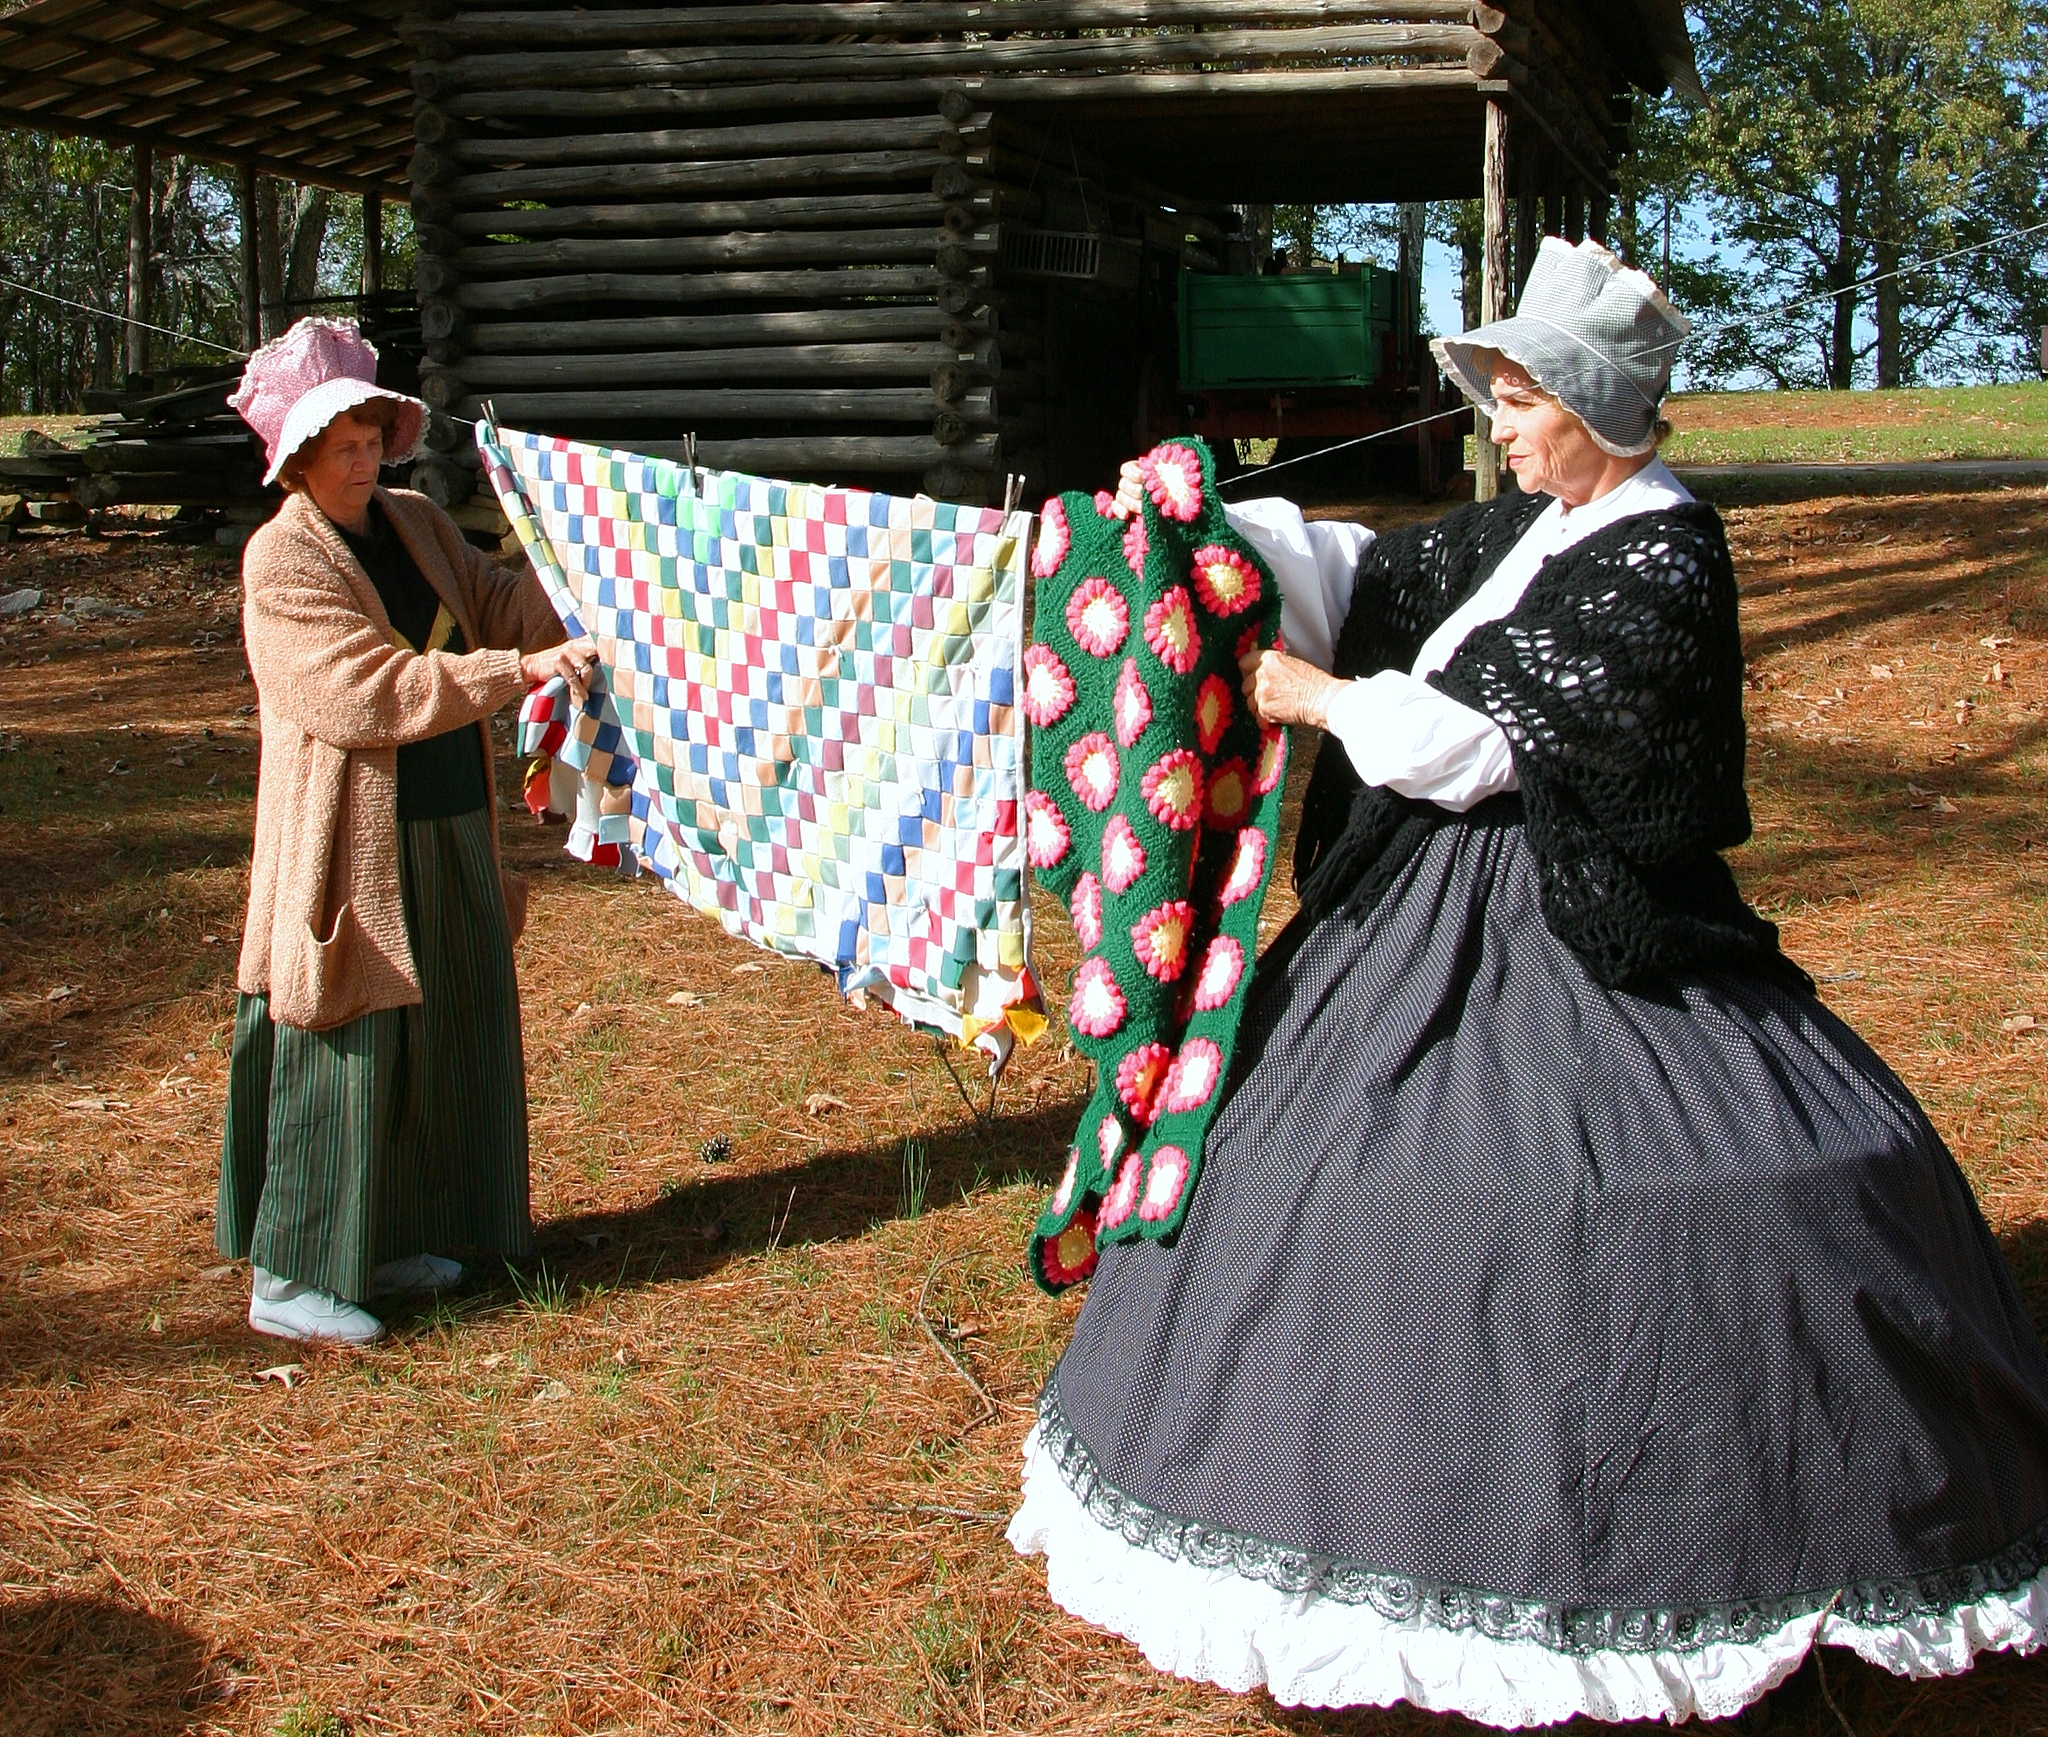 Recall LaGrange Festival provides a glimpse of life atop LaGrange Mountain in the 1800s